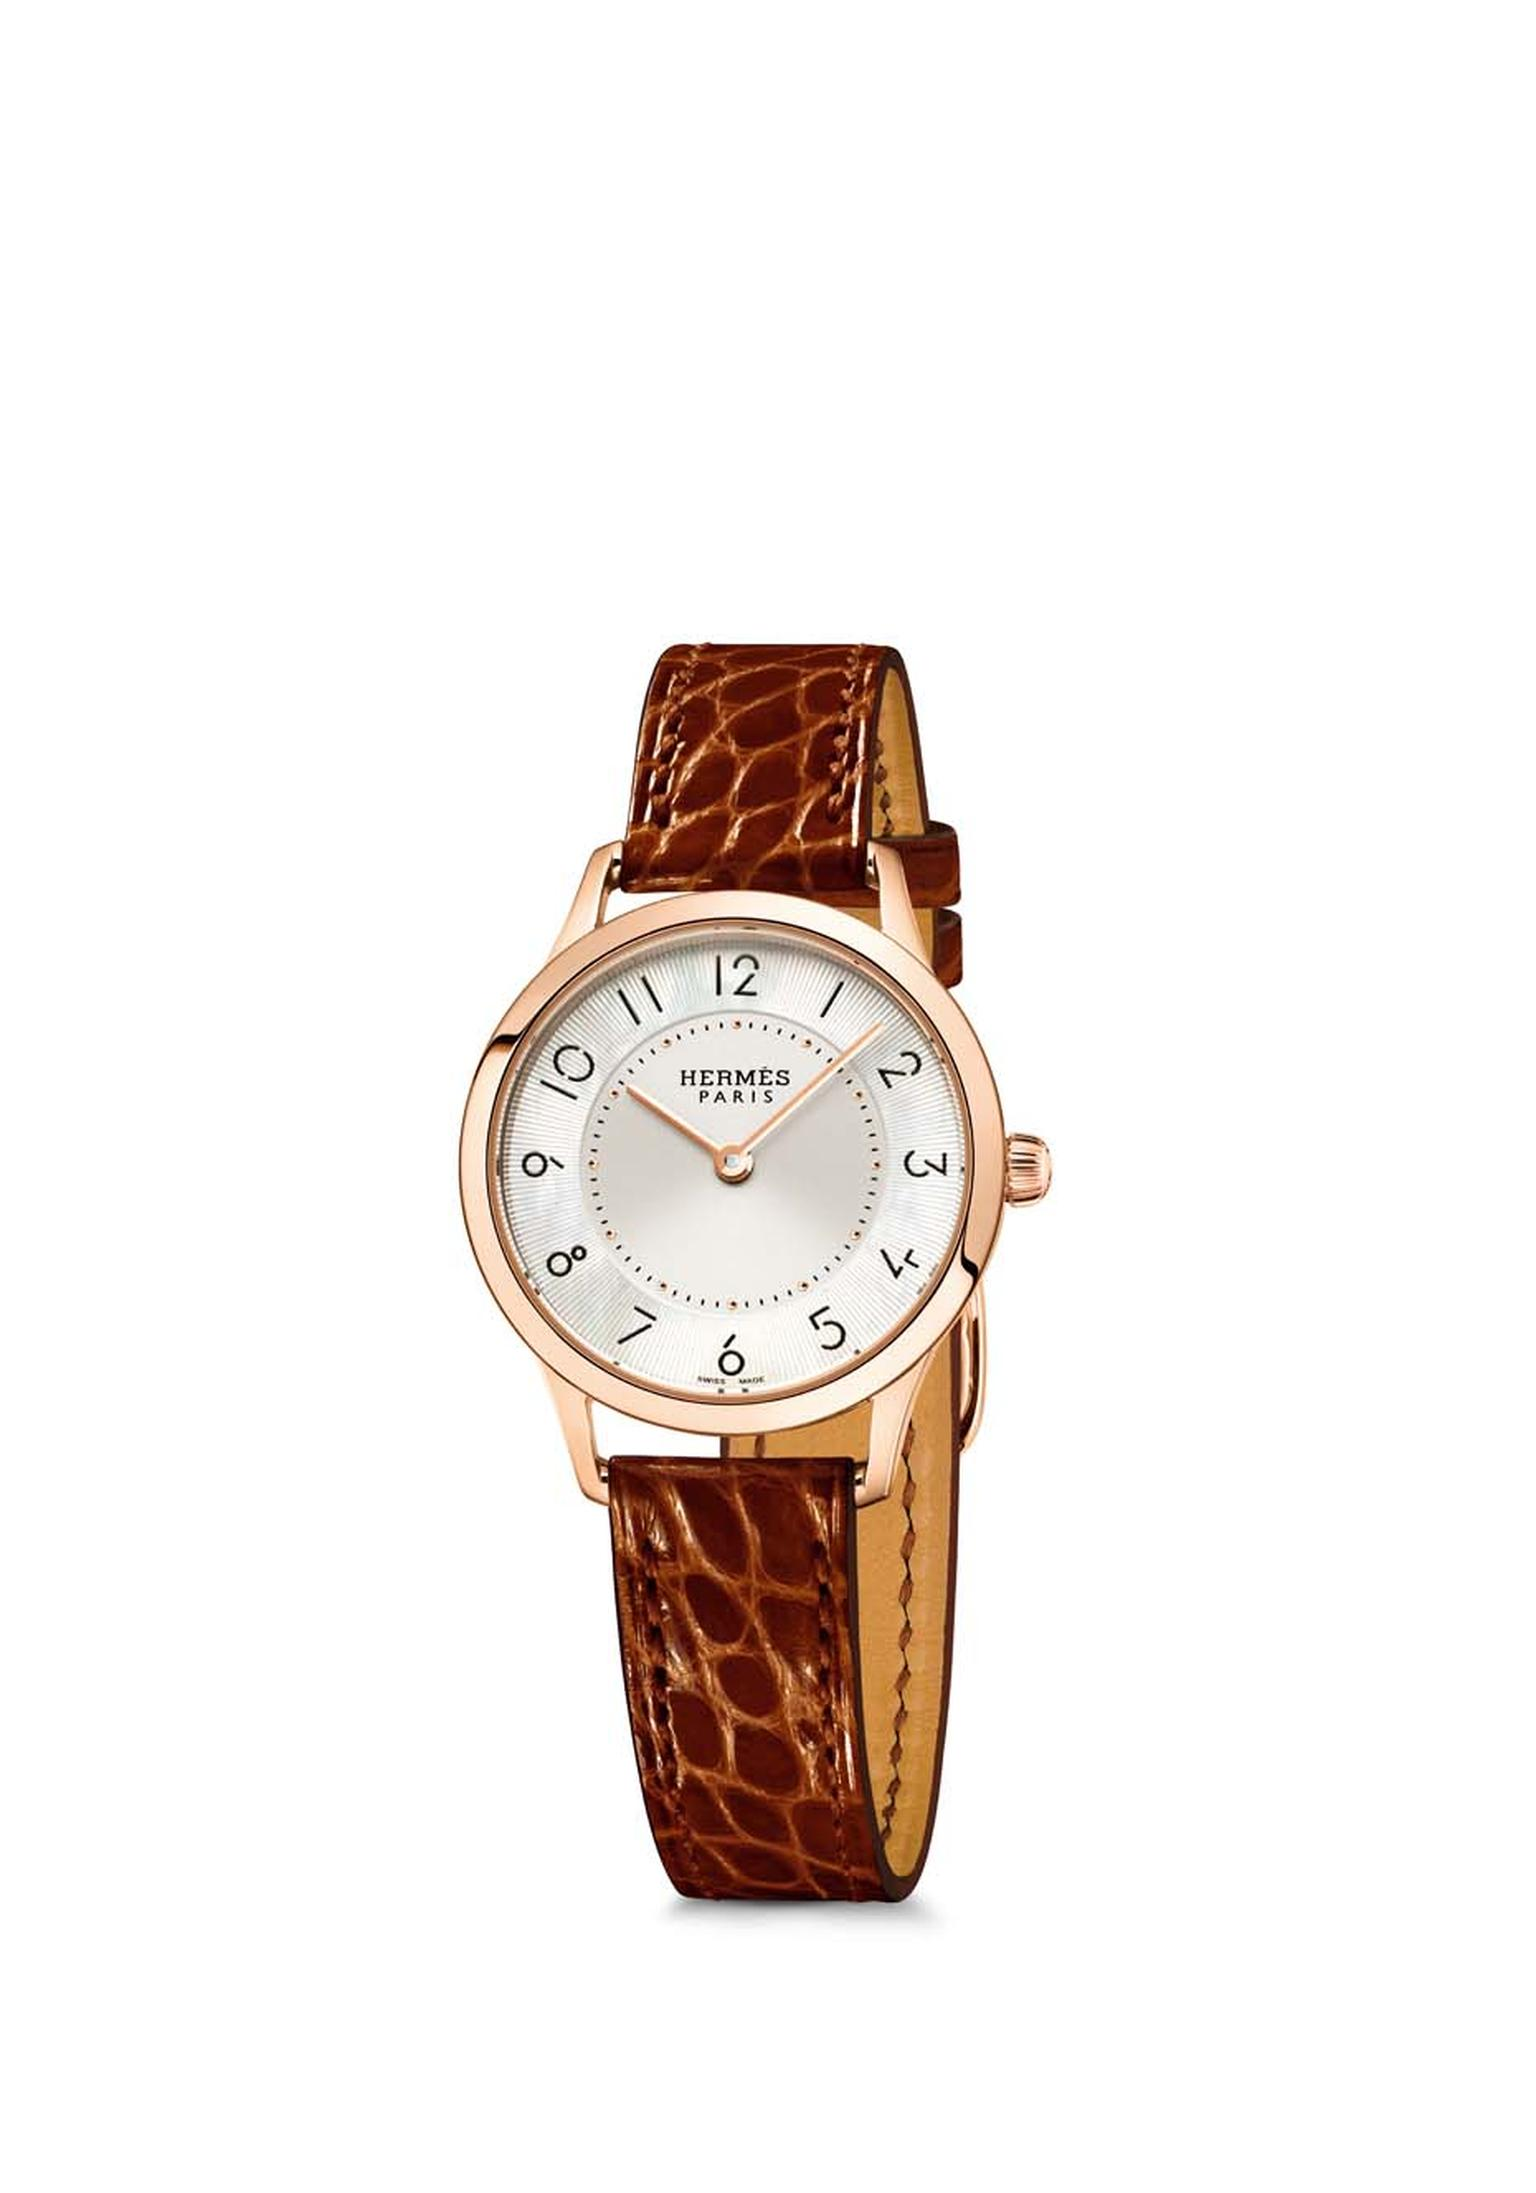 Slim d'Hermès watch in a 25mm rose gold case, also available with a diamond-set bezel. The 25mm model has a Swiss quartz movement.